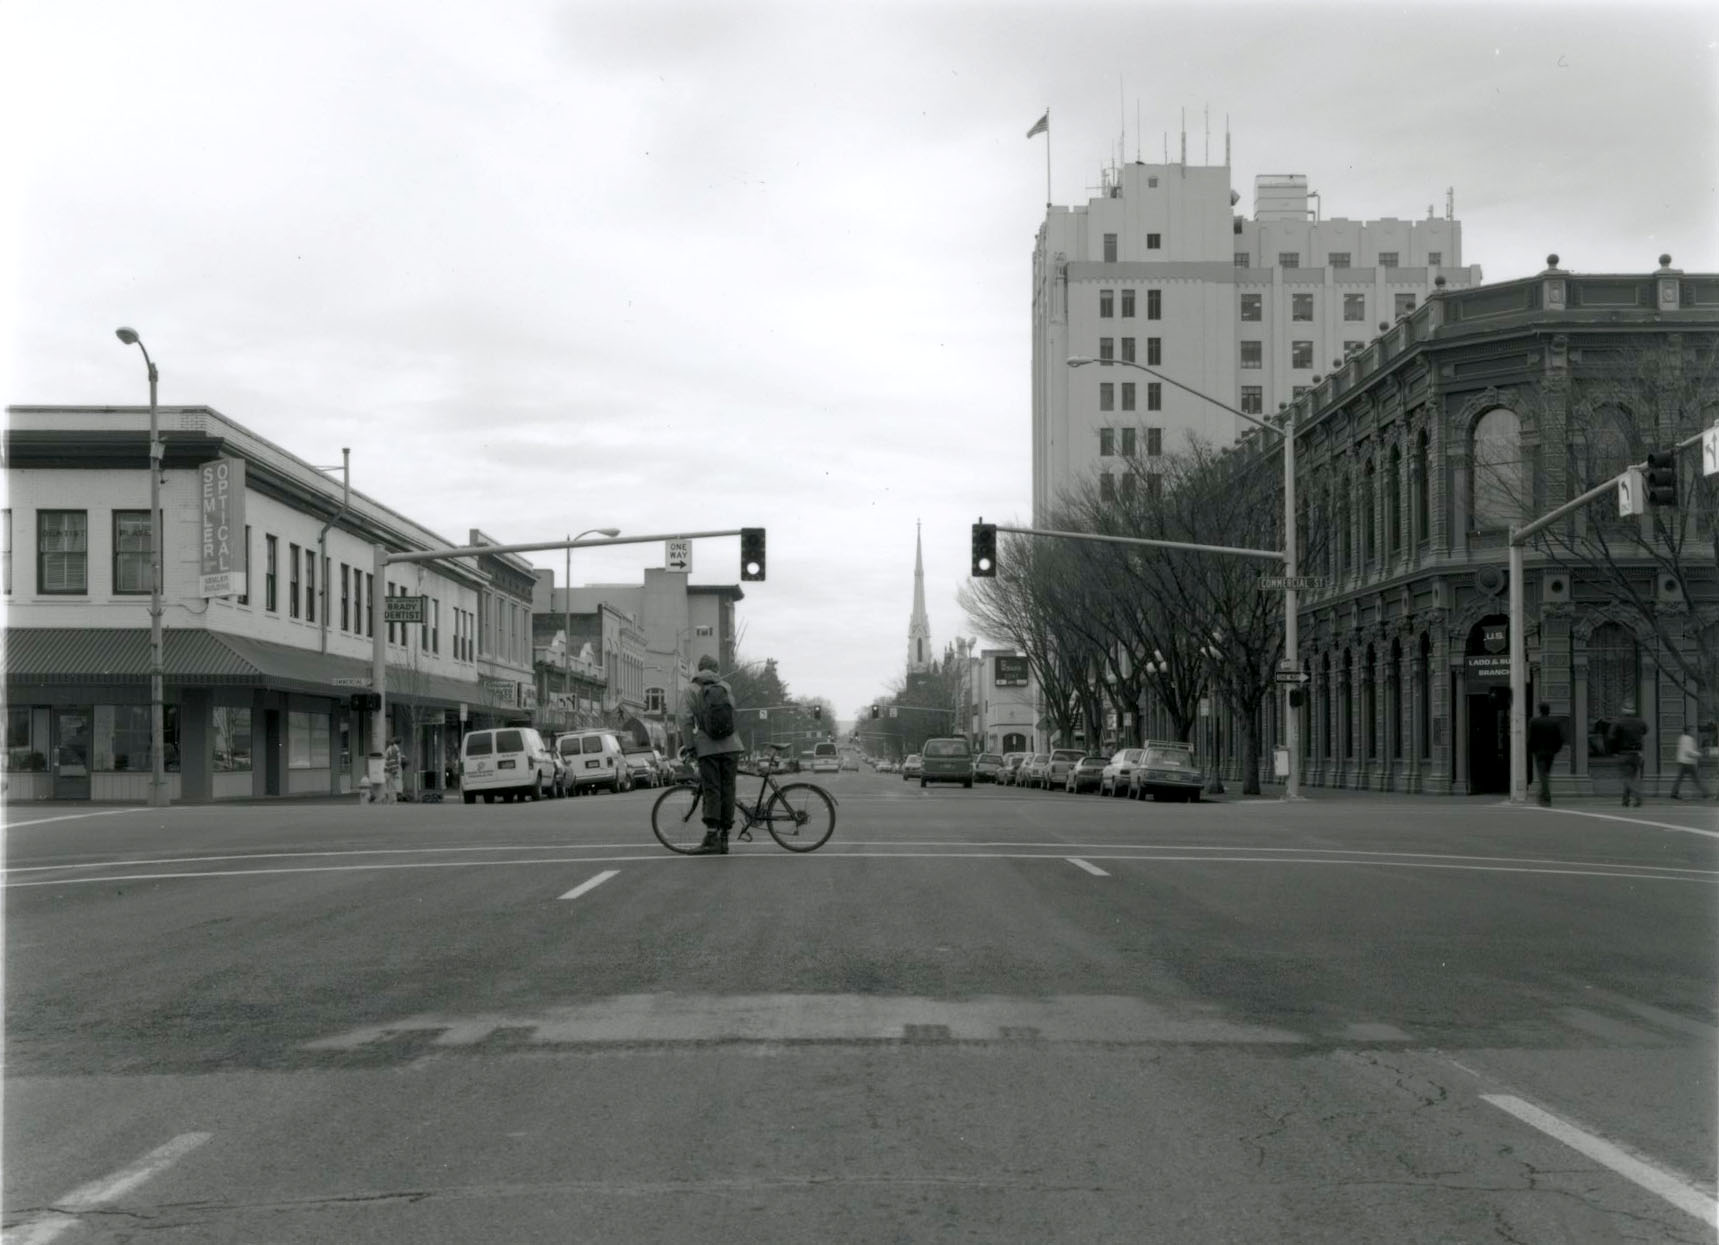 State Street, looking east from Commercial, 1994